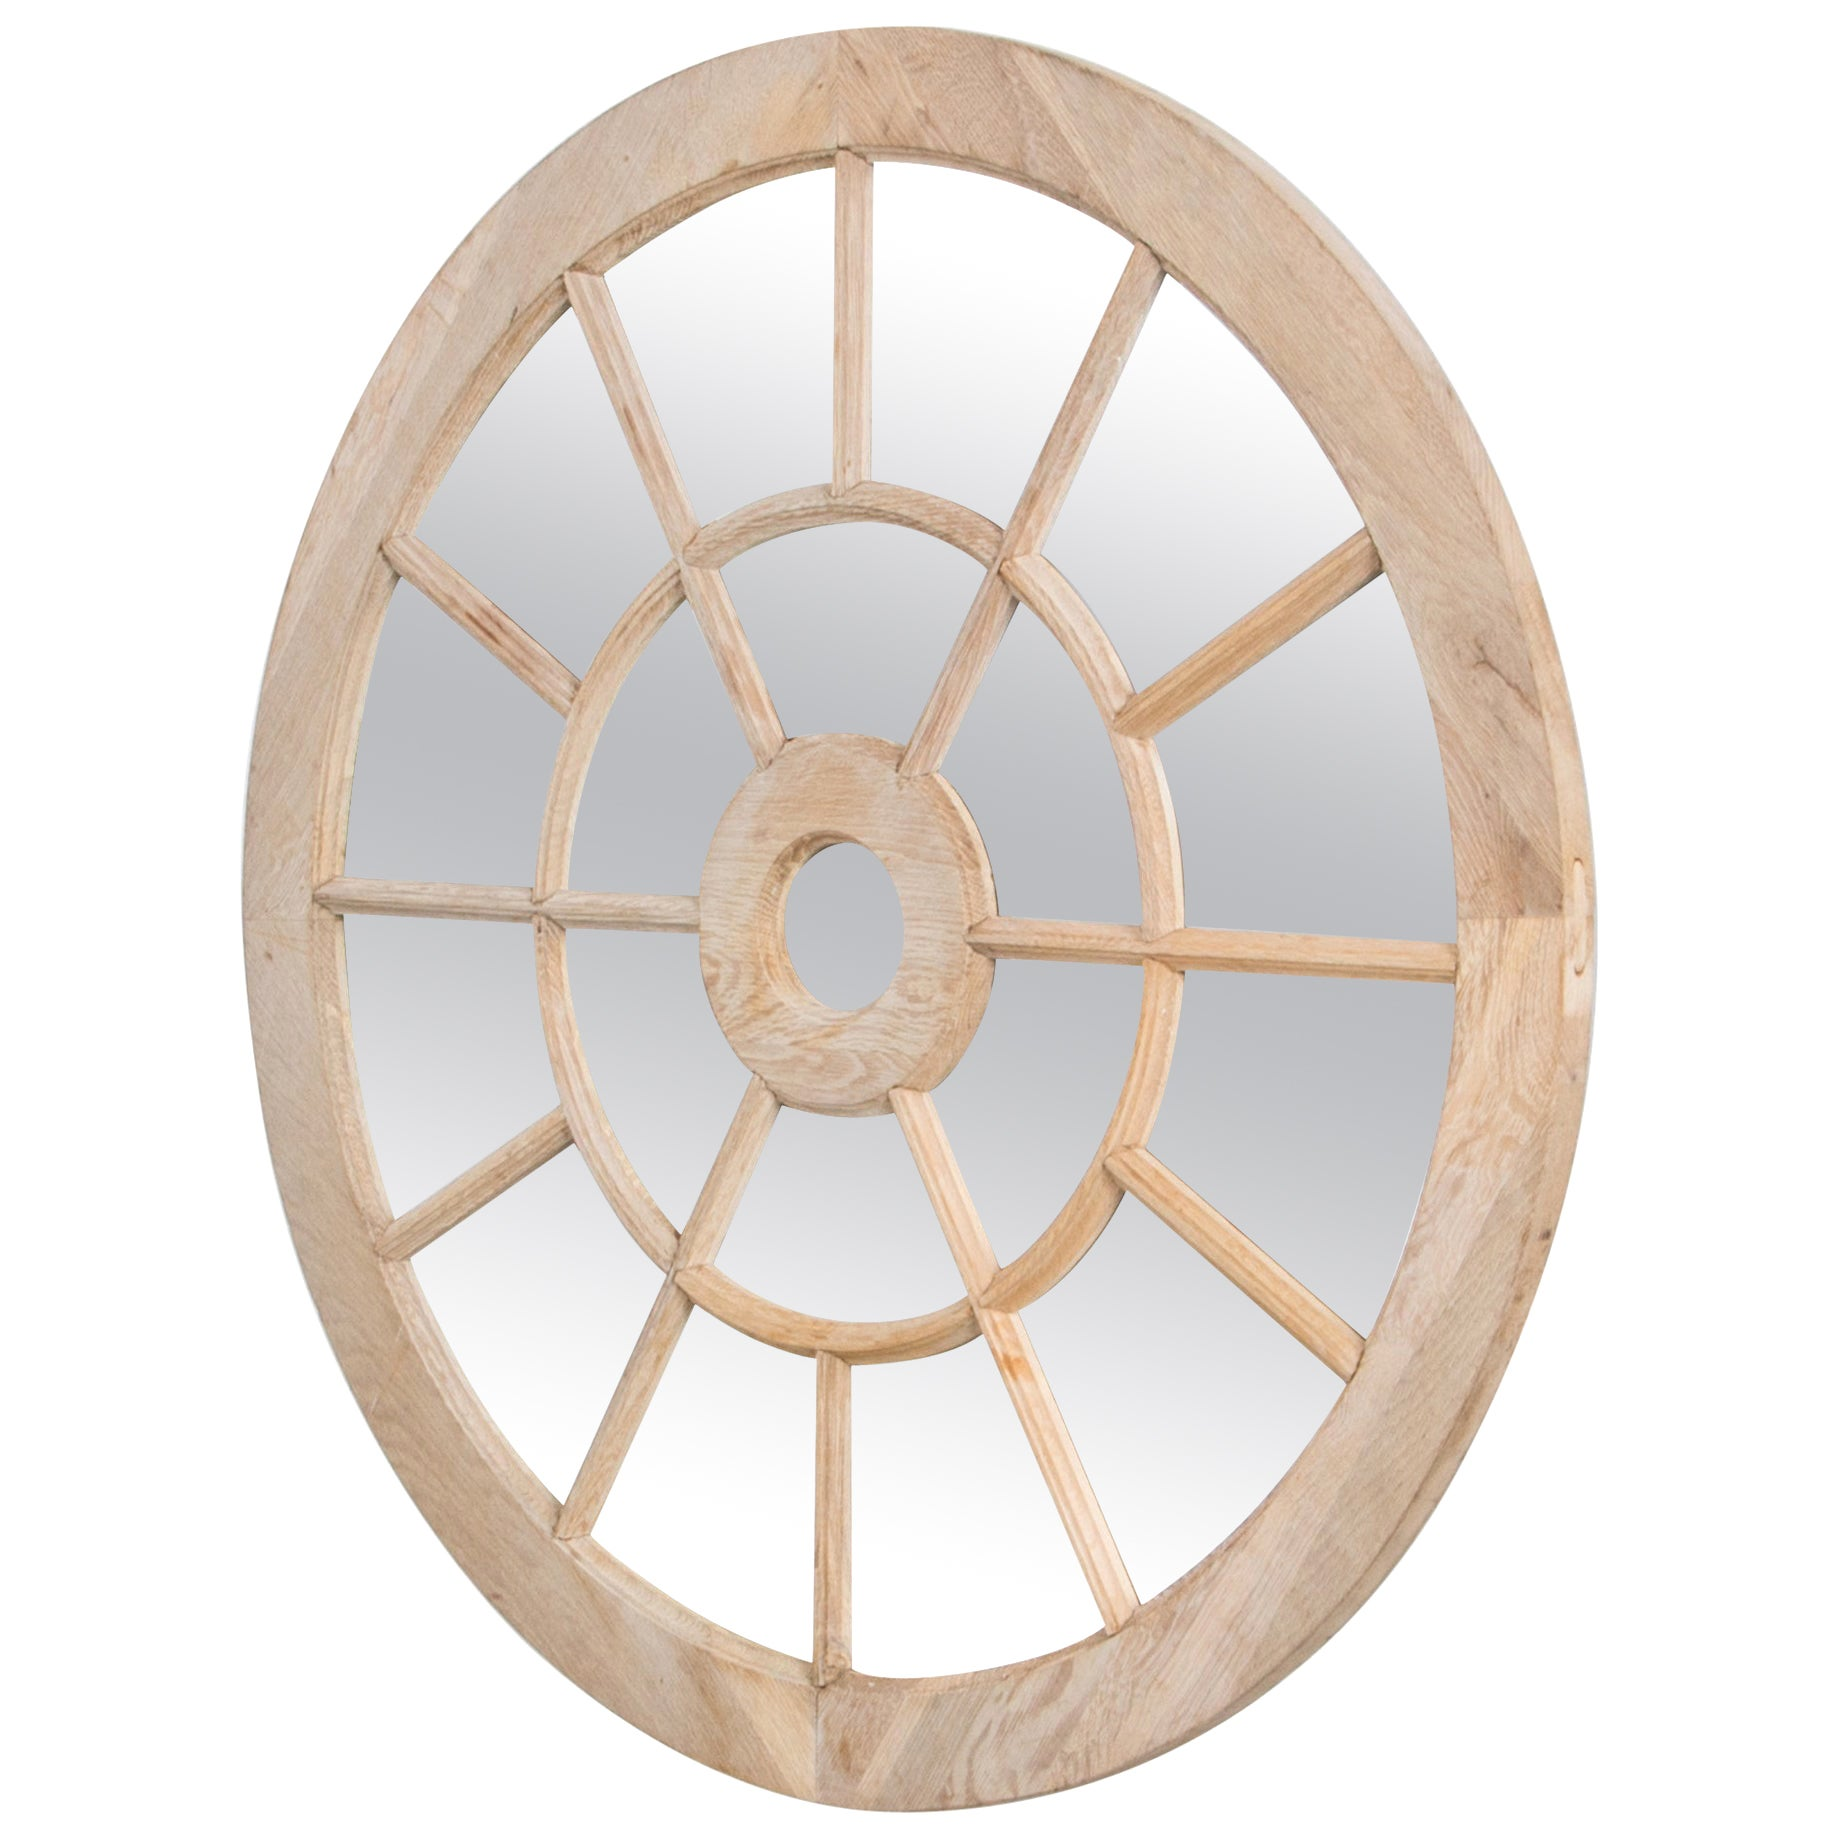 Oak Round Window Mirror